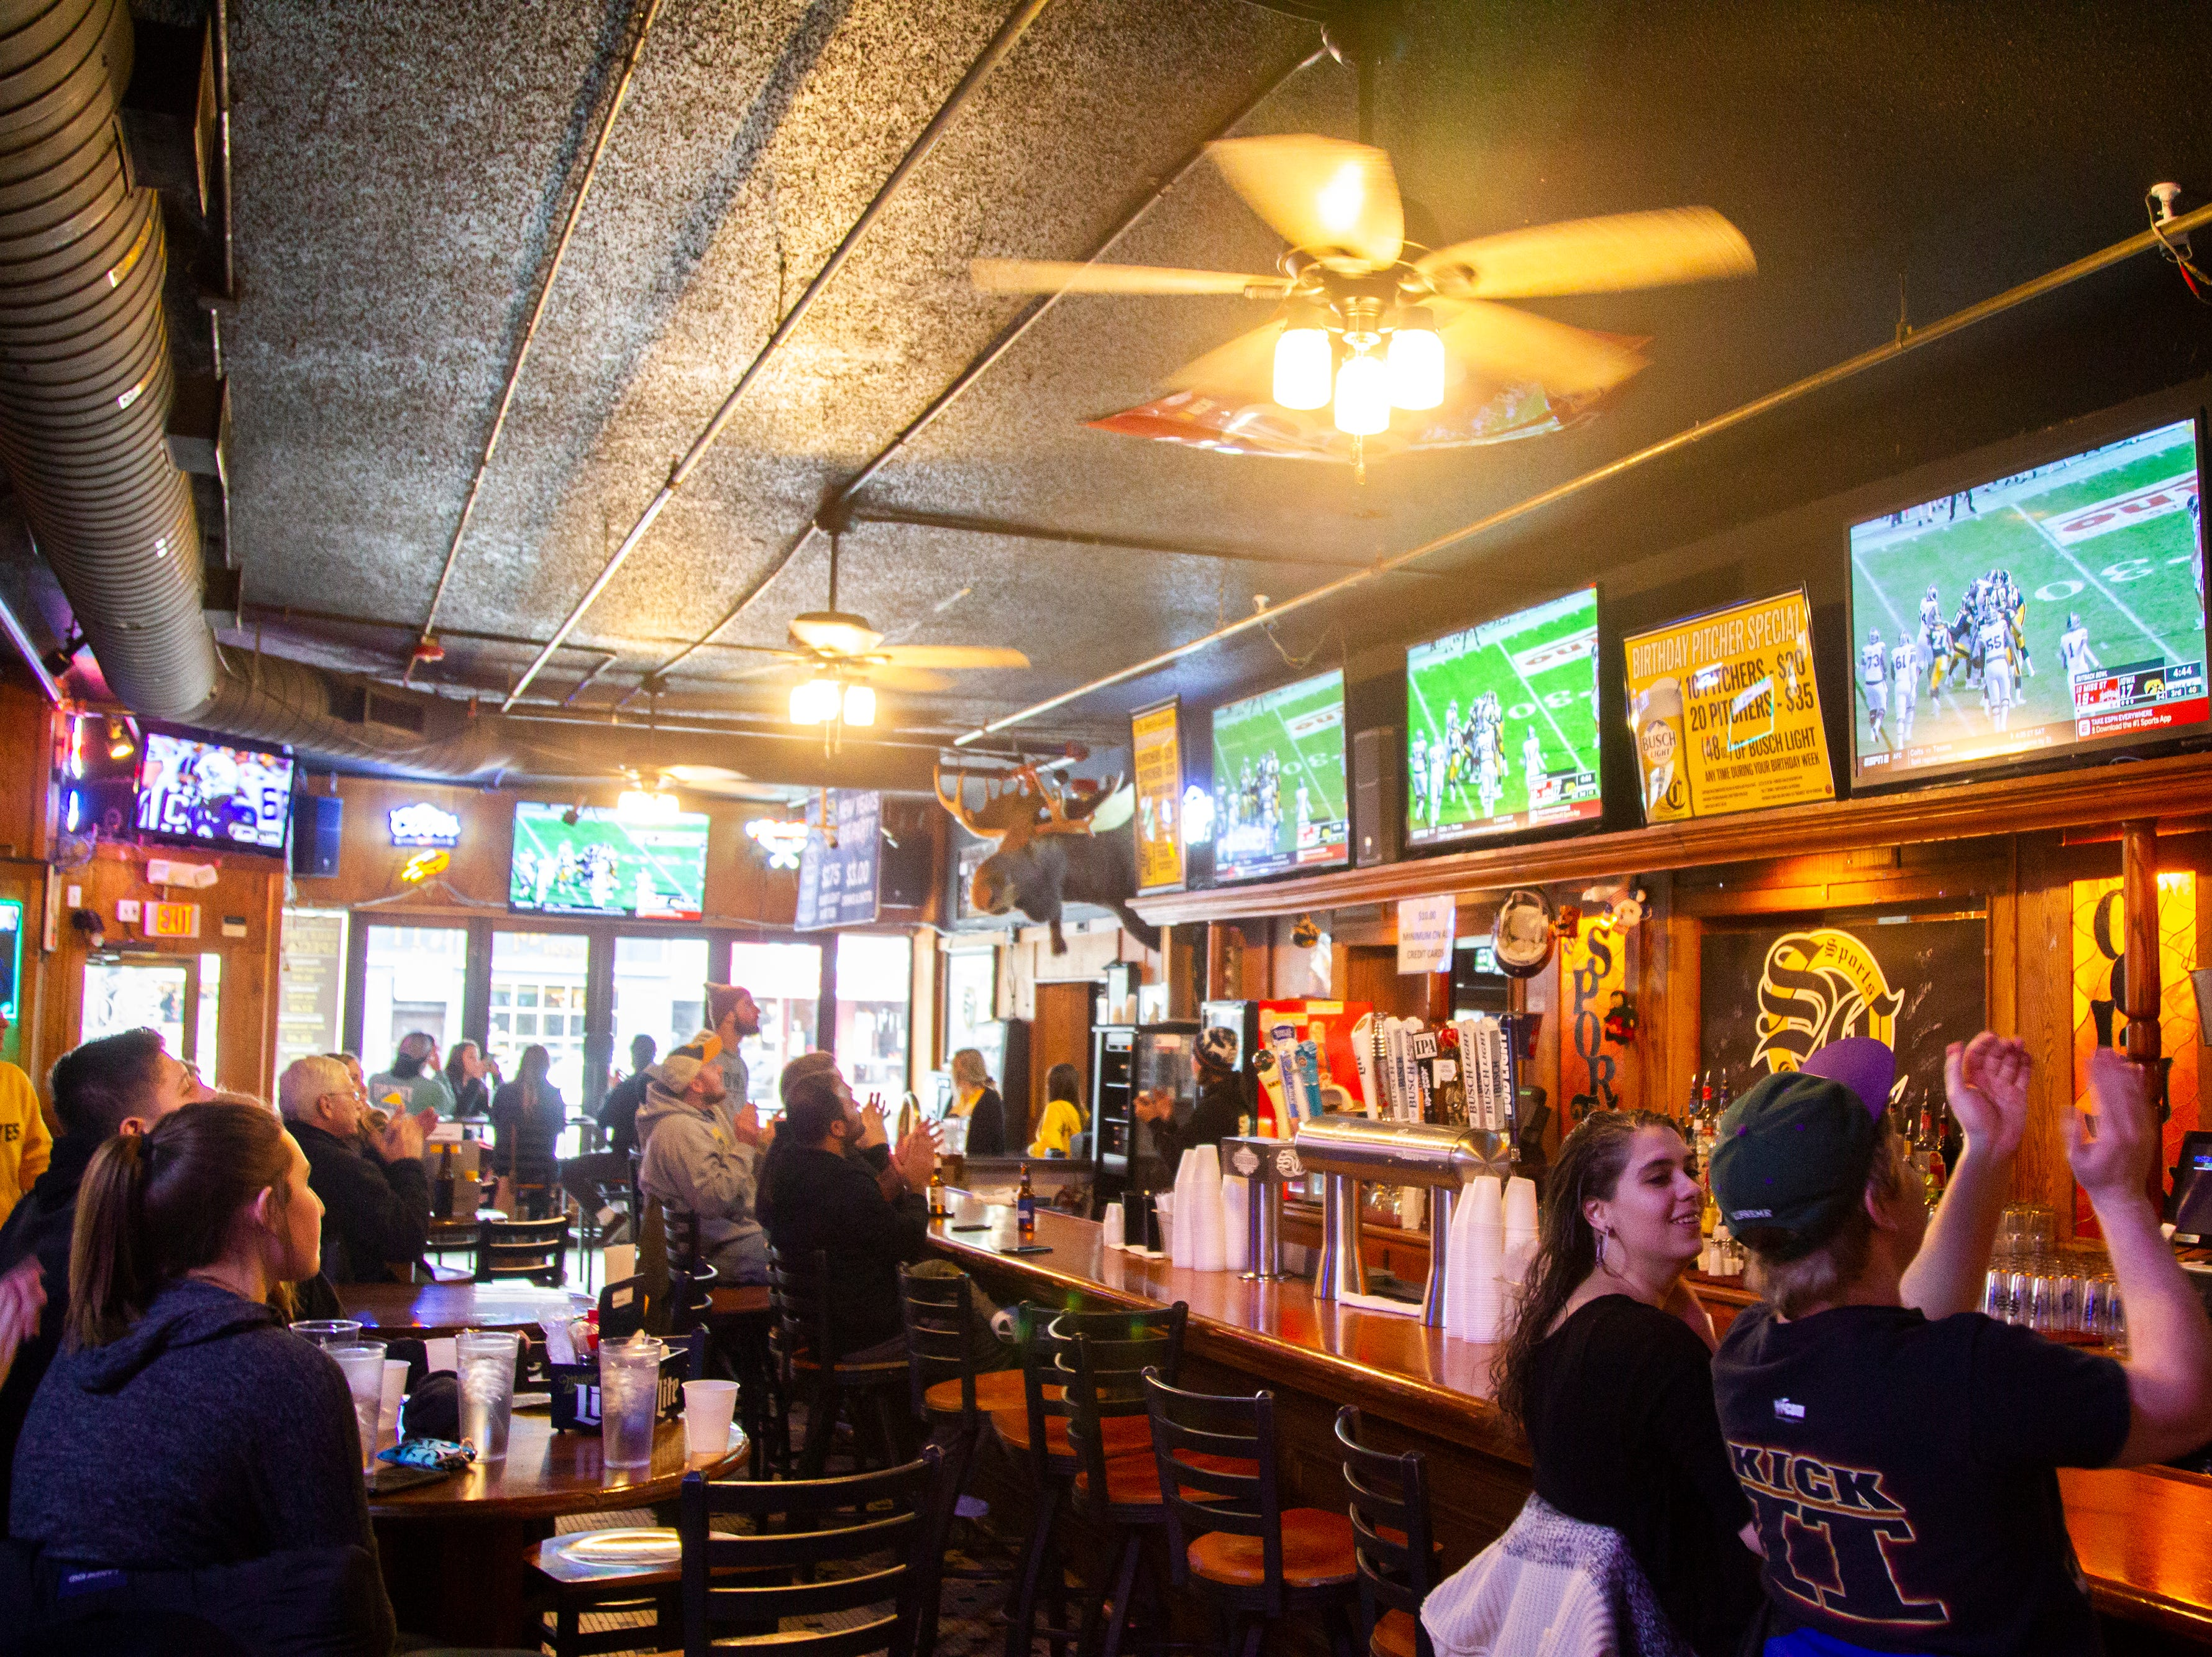 Fans react while watching the Iowa vs. Mississippi State Outback Bowl football game on Tuesday, Jan. 1, 2019, at Sports Column on S. Dubuque Street in Iowa City.